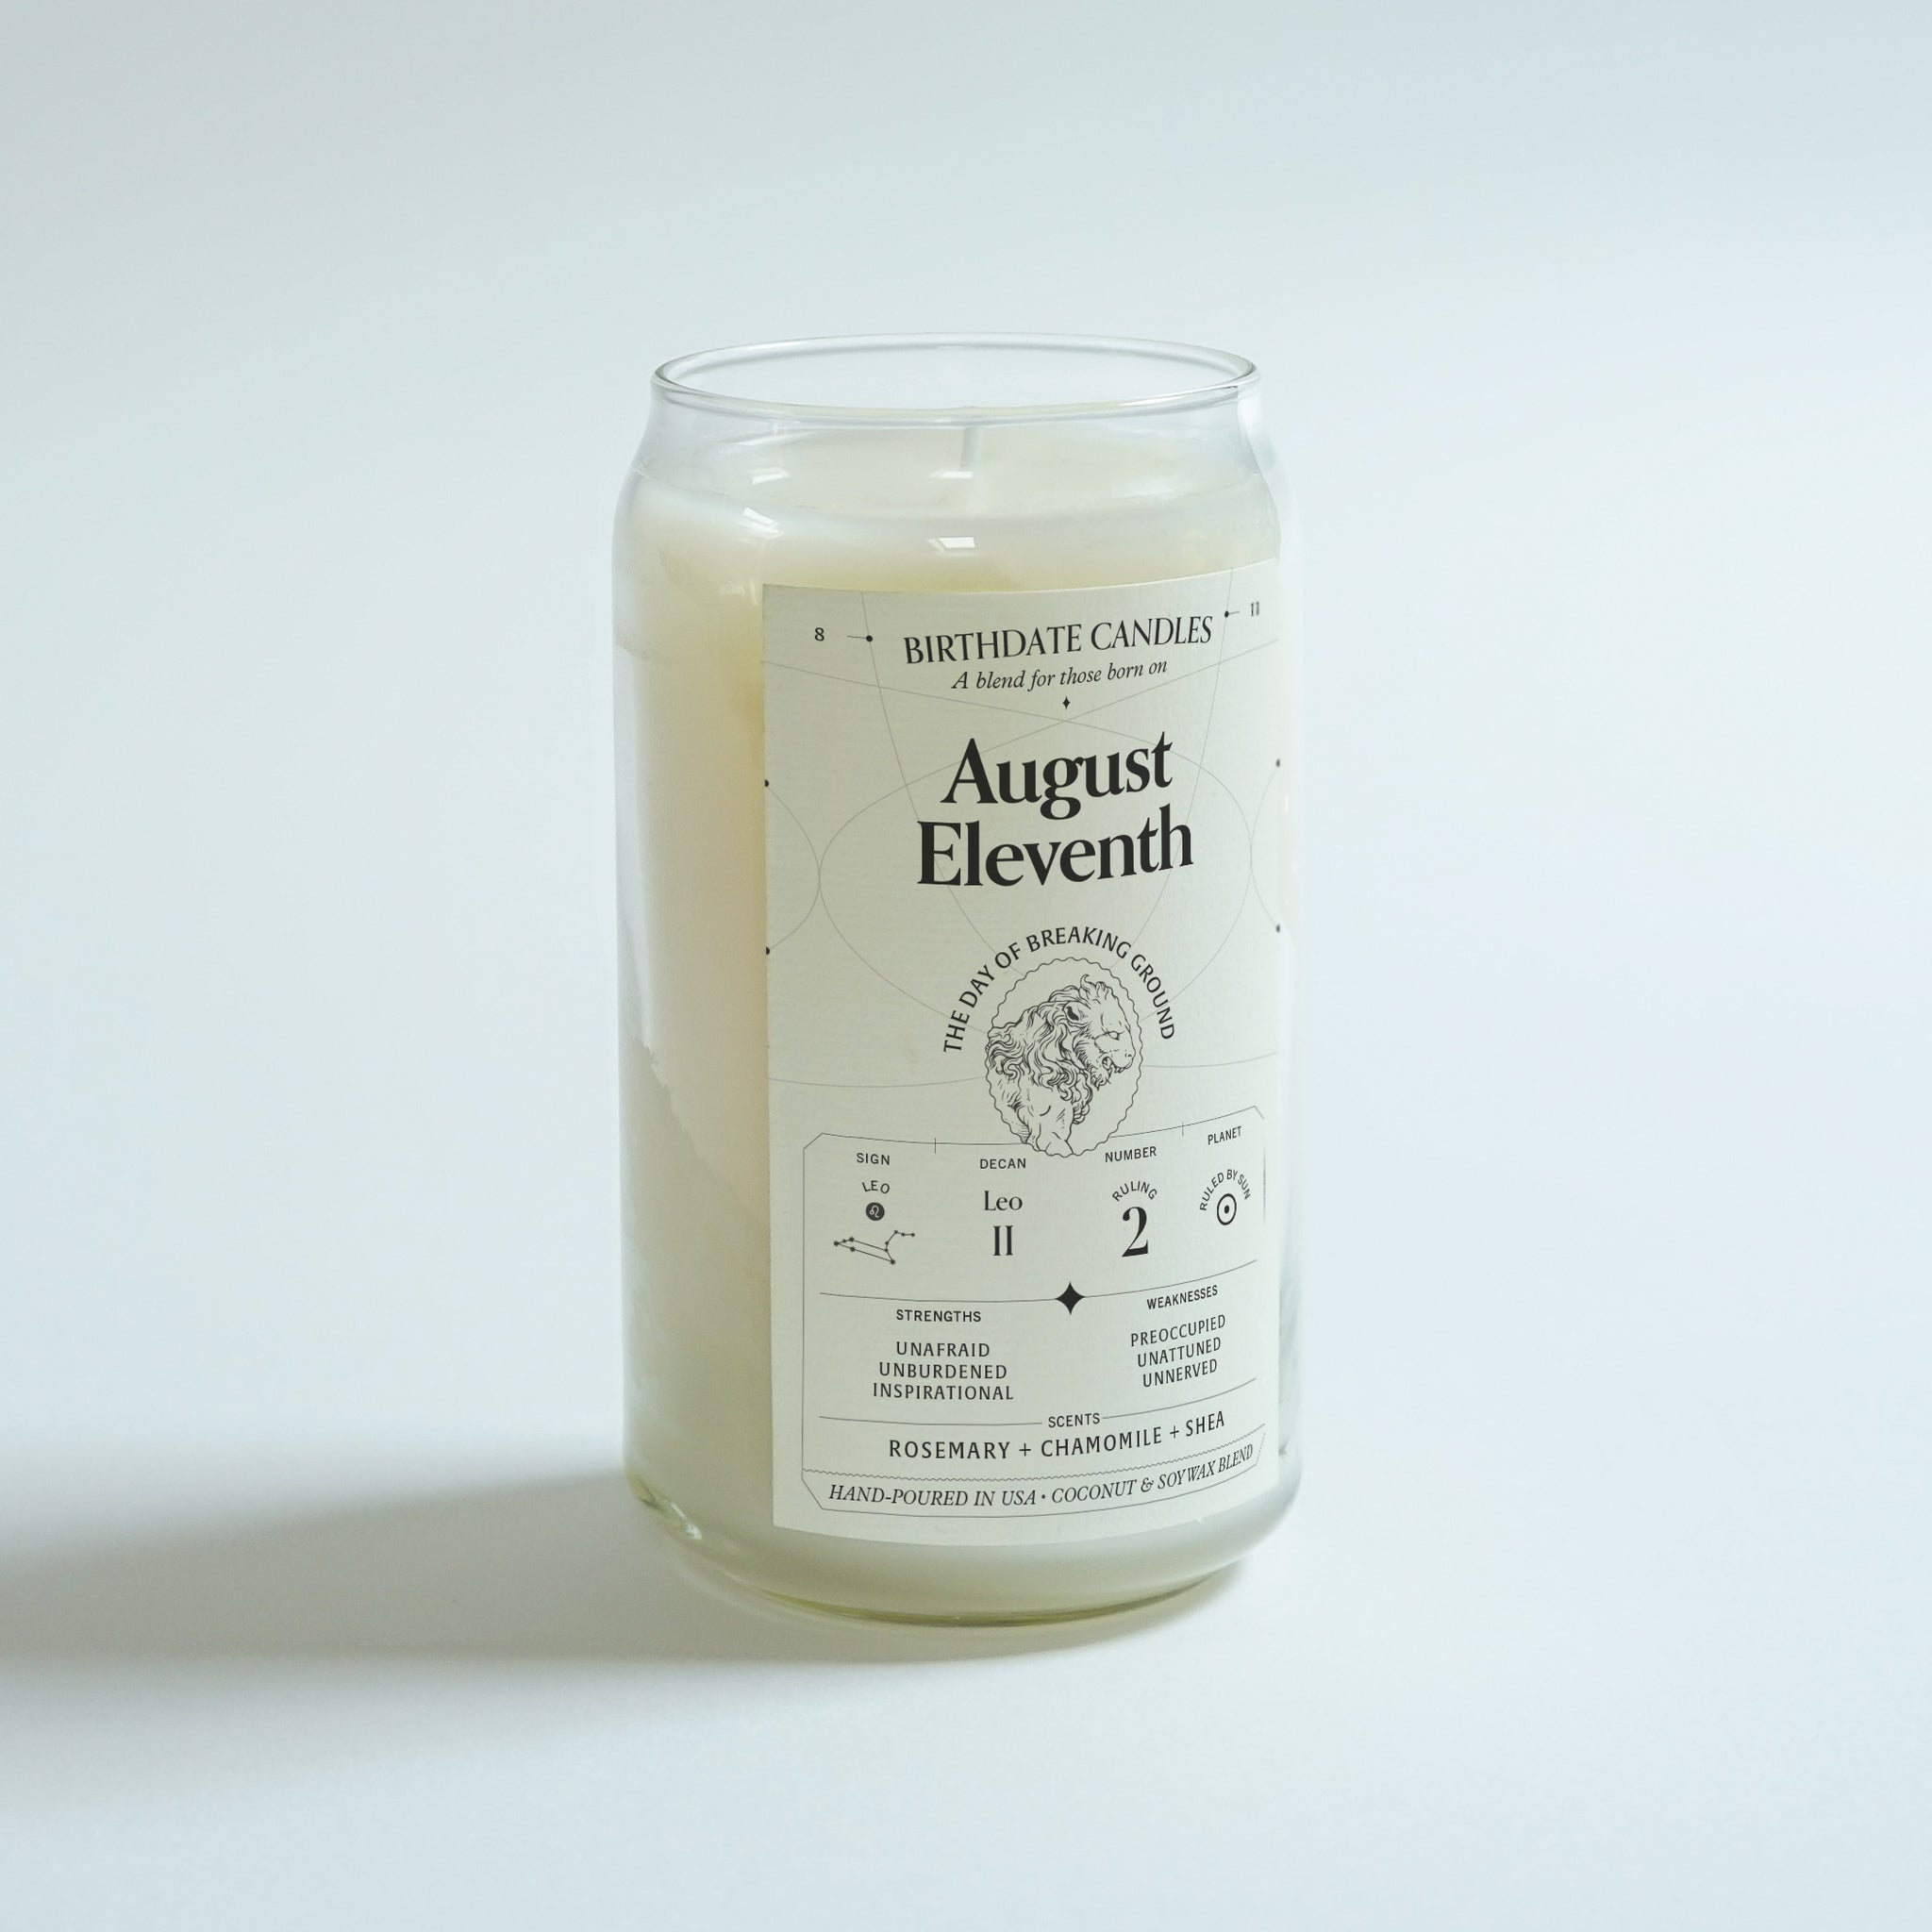 The August Eleventh Birthday Candle